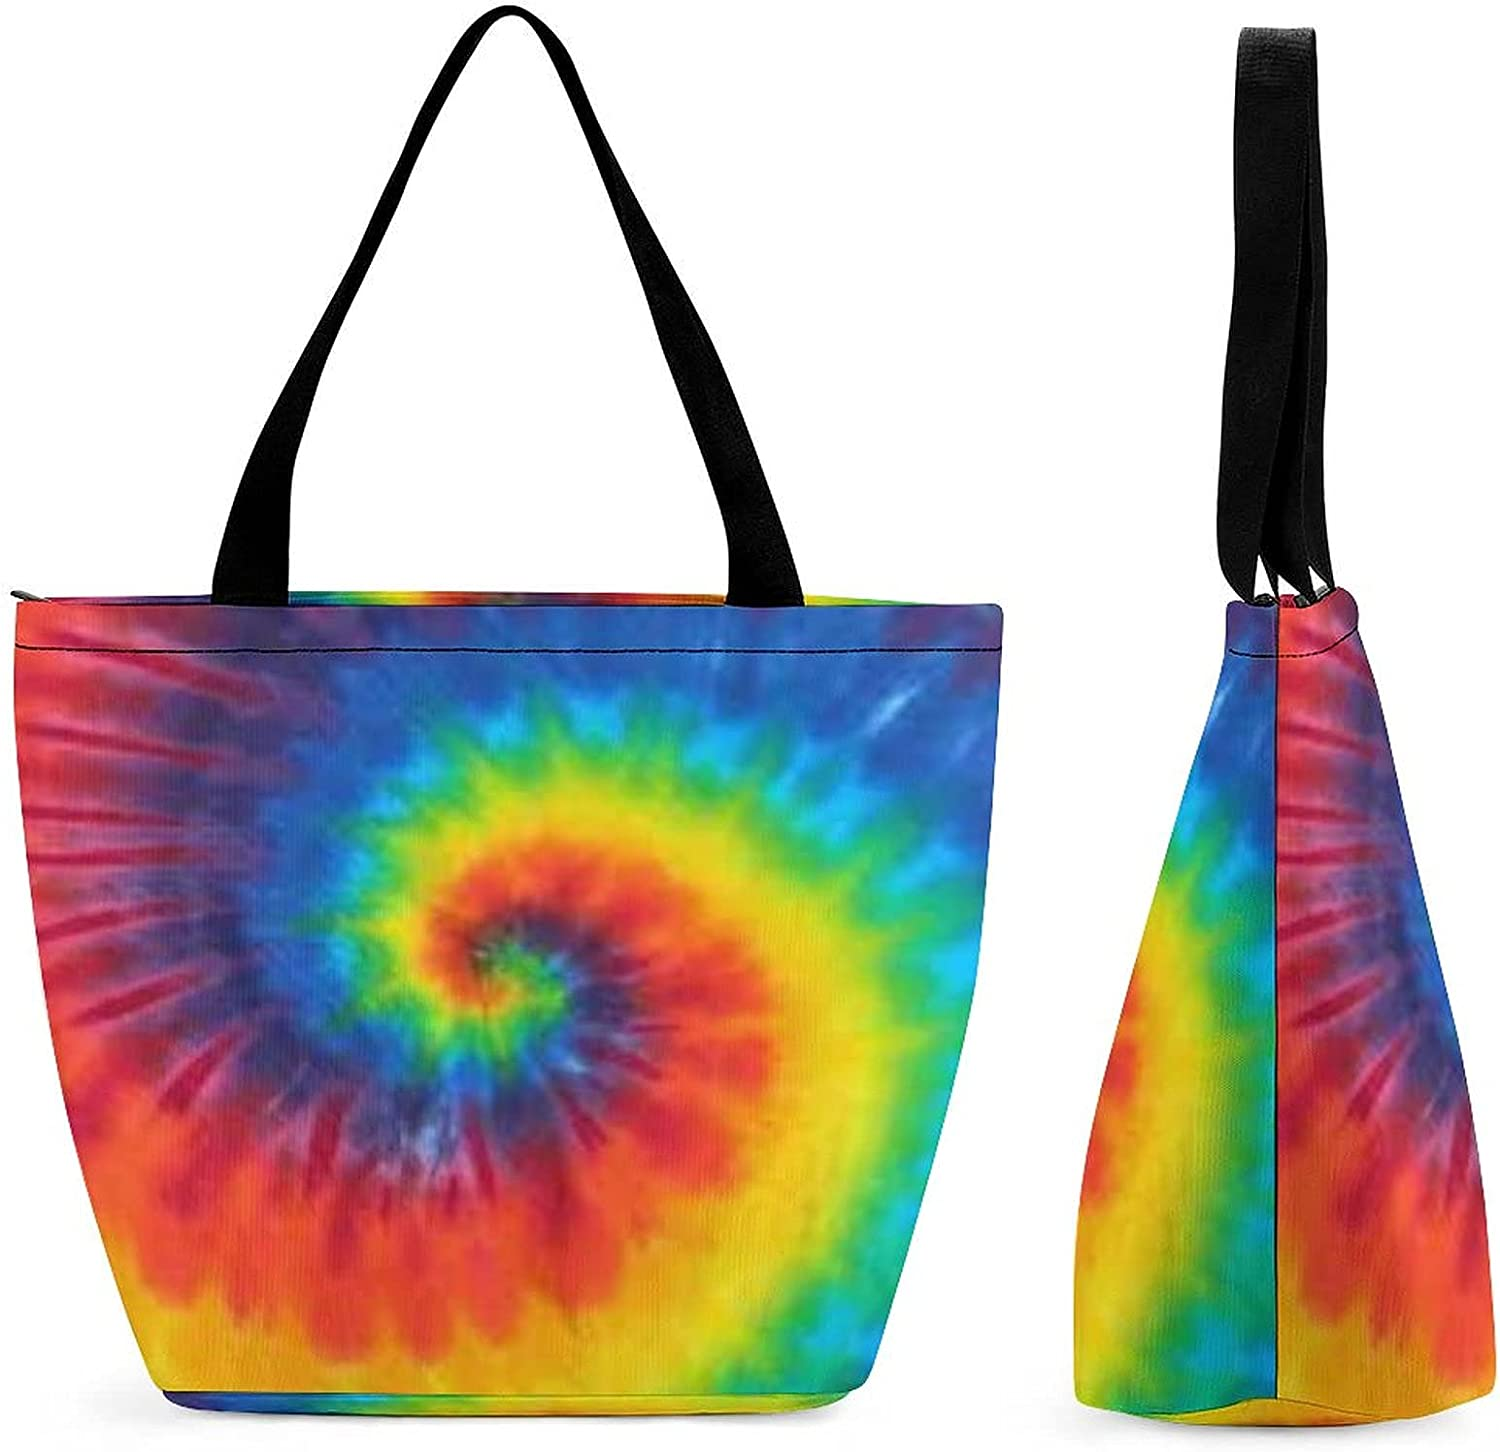 Tie Dallas Mall Dye Pattern Womens' Large Shoulde Reusable Capacity Be super welcome Tote Bag